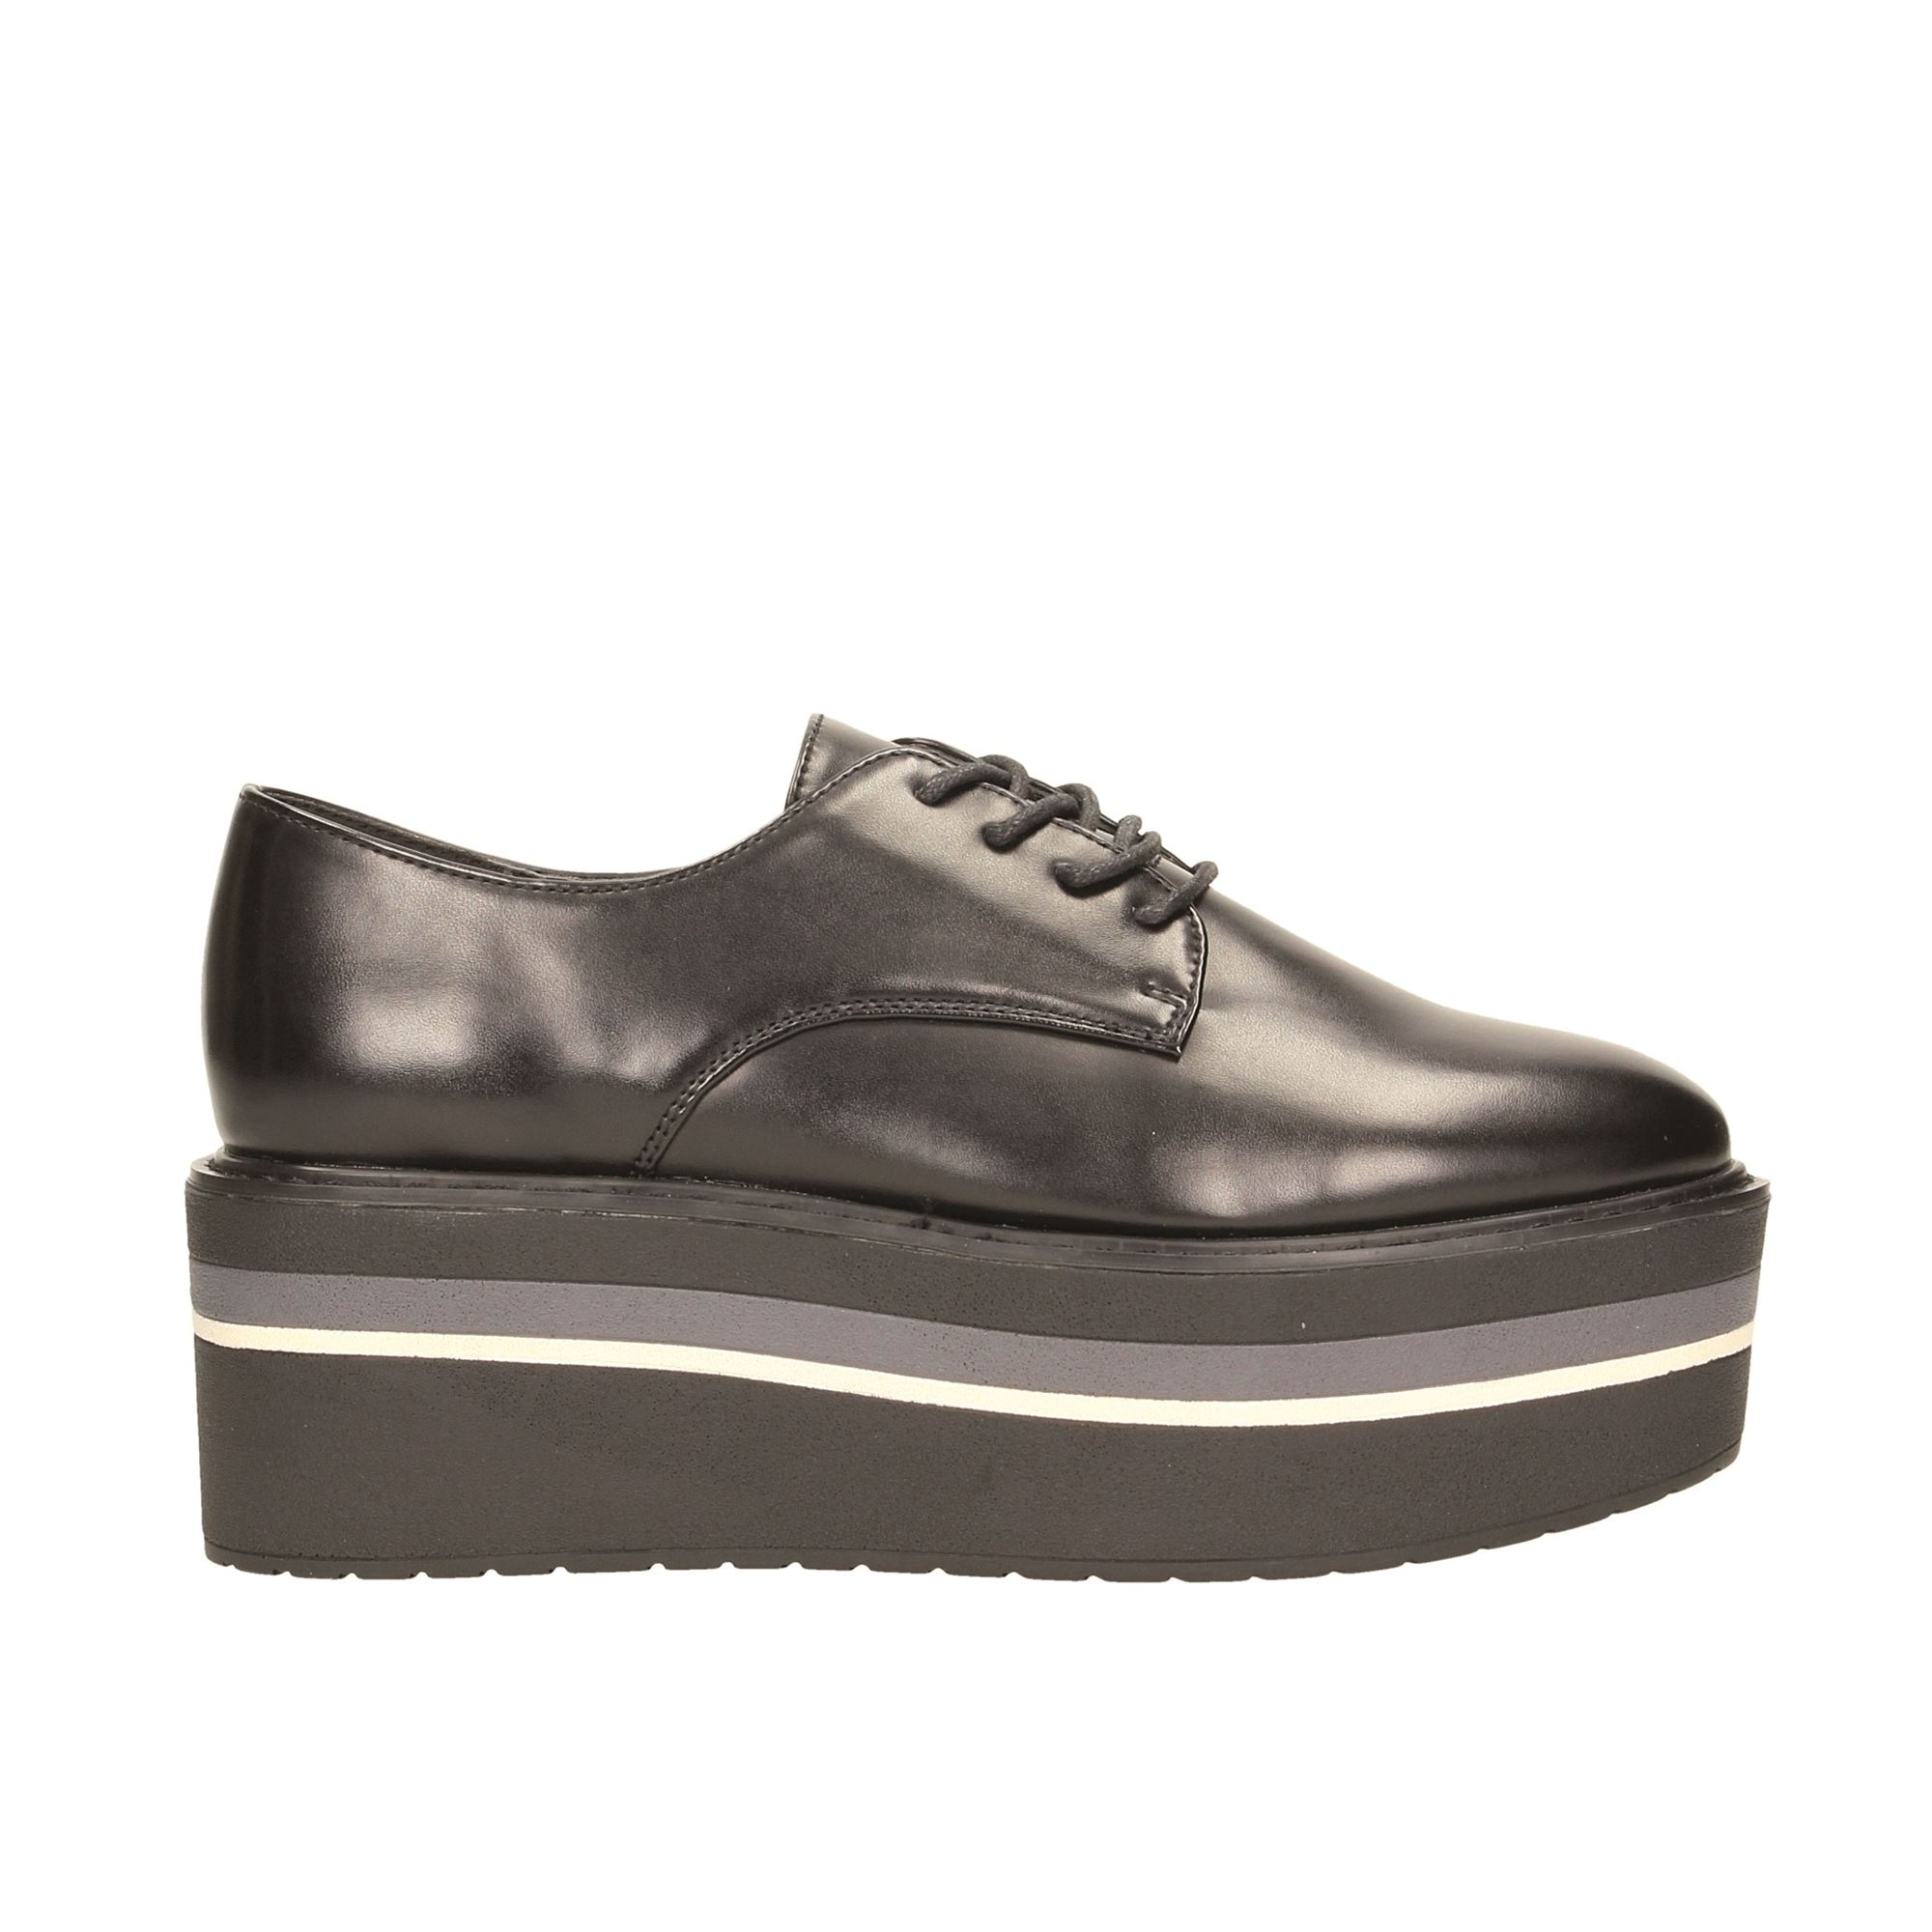 Tata Italia Shoes Woman Derby Black E717-12